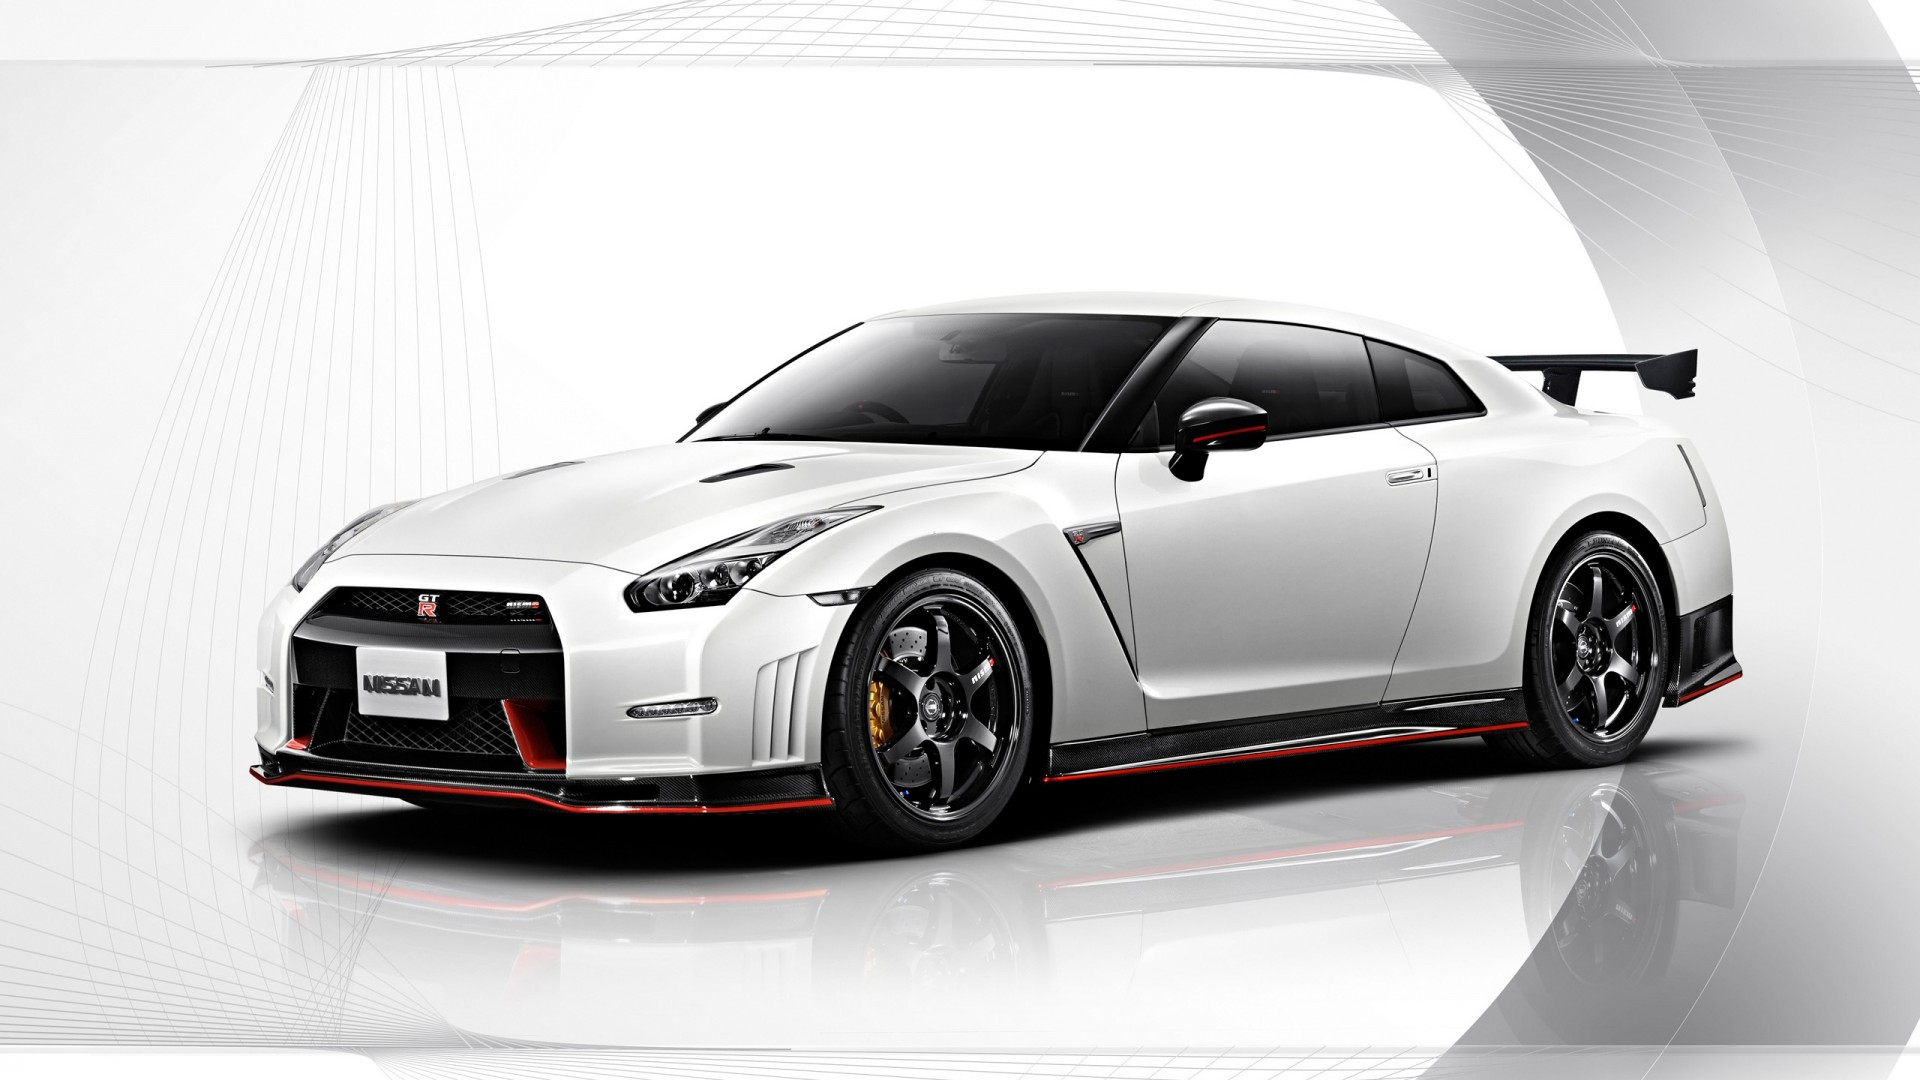 2015 nissan gt r nismo 2 wallpaper hd car wallpapers id 3950. Black Bedroom Furniture Sets. Home Design Ideas